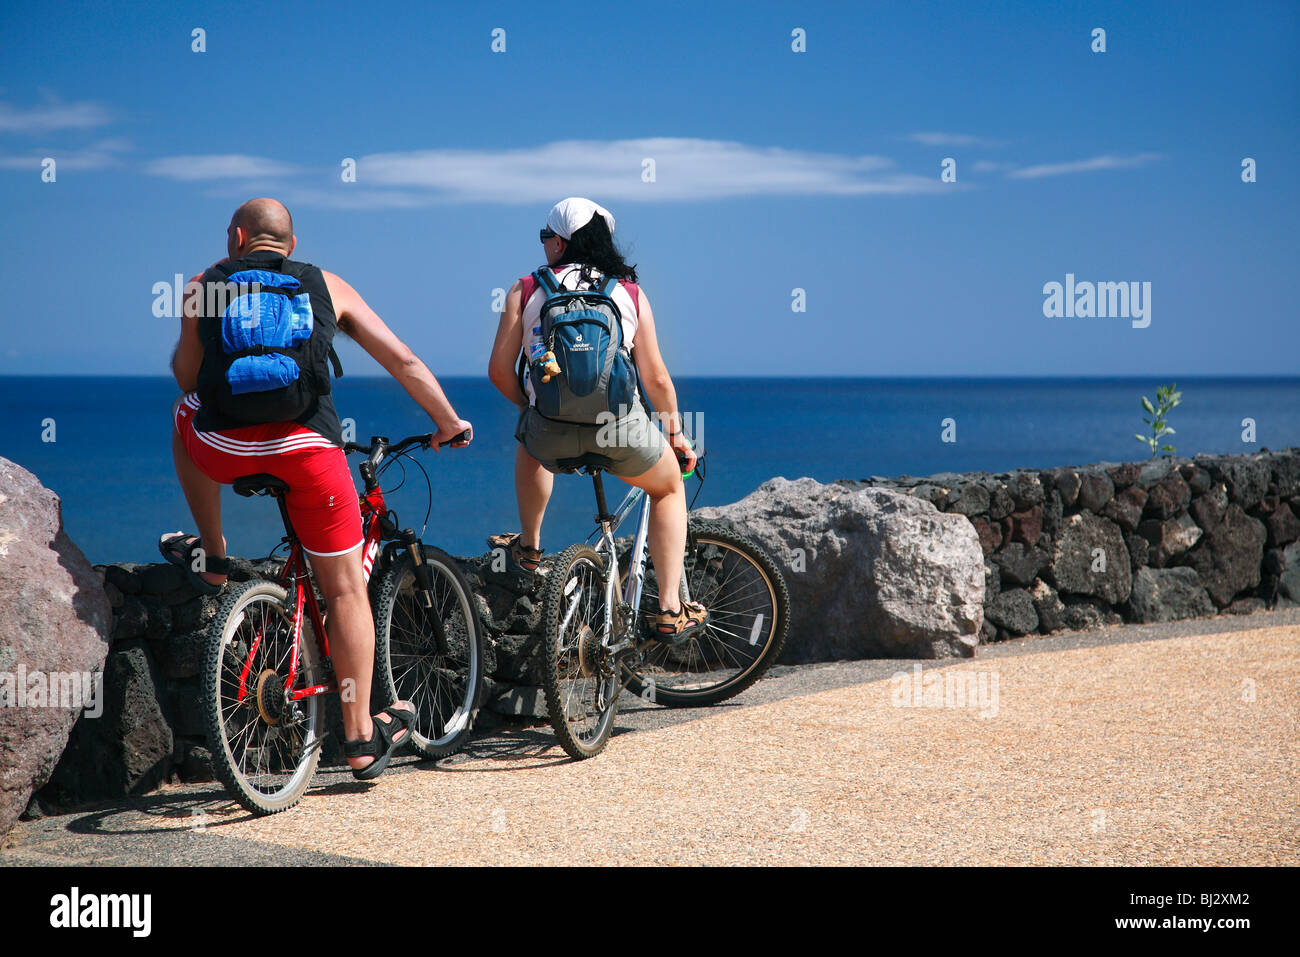 Tourists riding bicycles looking over the sea, Lanzarote, Canary Islands, Spain - Stock Image